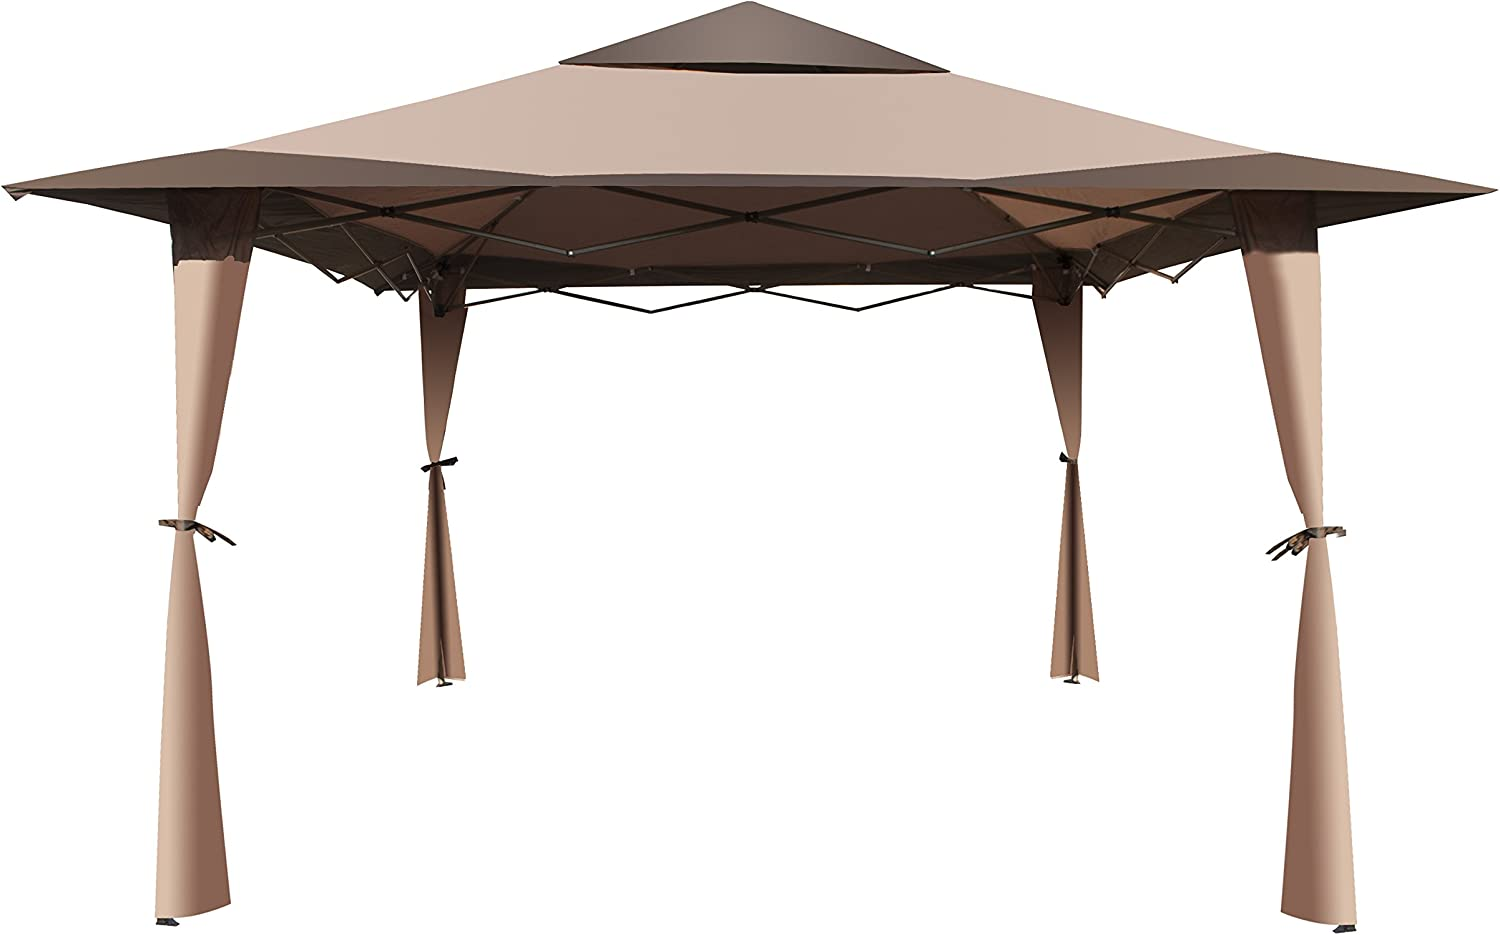 ALEKO gzb004 doble techo 10 x 10 pies Poliéster Patio Gazebo Picnic parasol toldo, color marrón: Amazon.es: Jardín